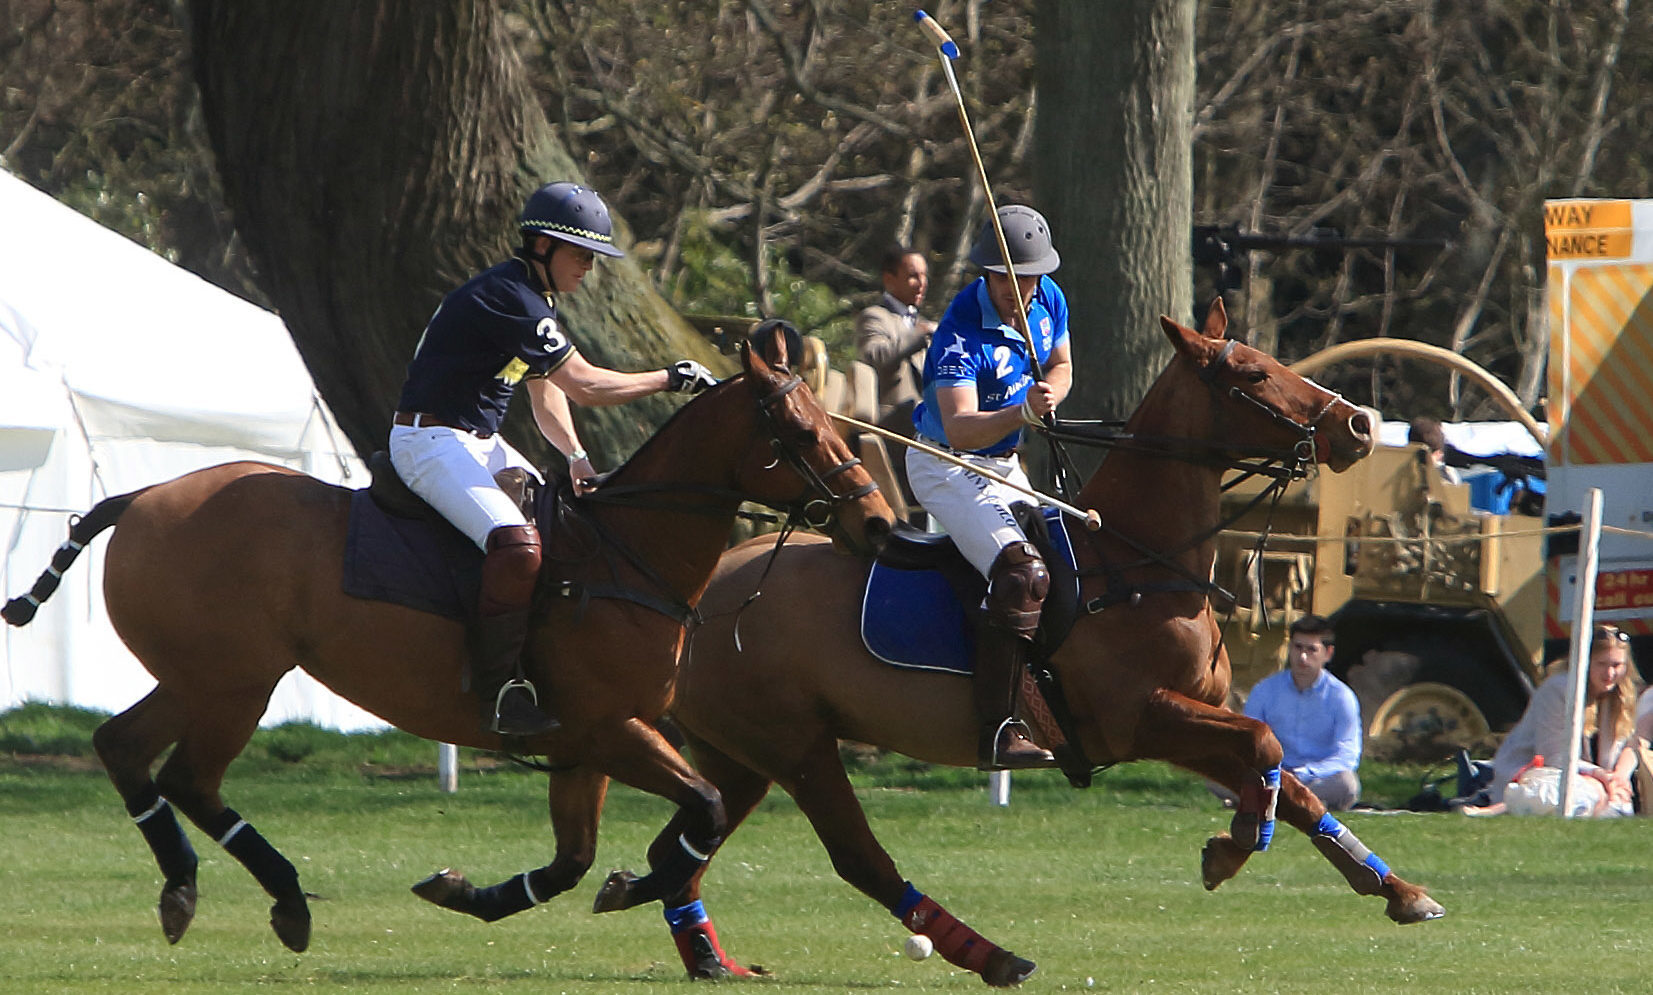 Pictured at errol Park on Saturday during the St  Andrews help for heros Polo event  St andrews (R)V Royal scots Dragoon Guards